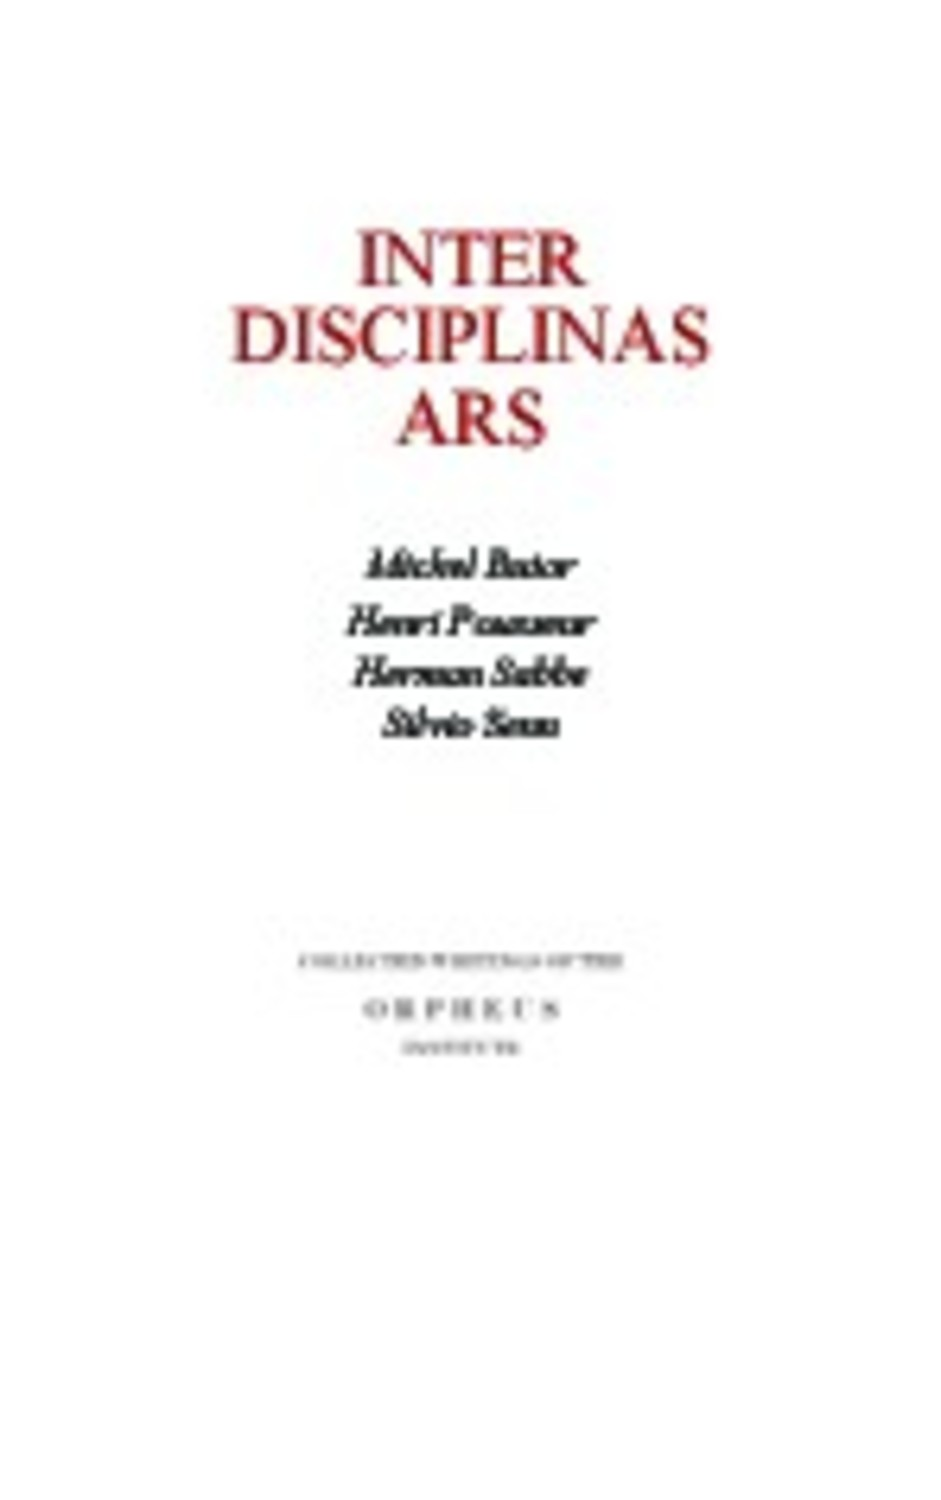 Inter disciplinas ars - Collected writings of the Orpheus-Instituut